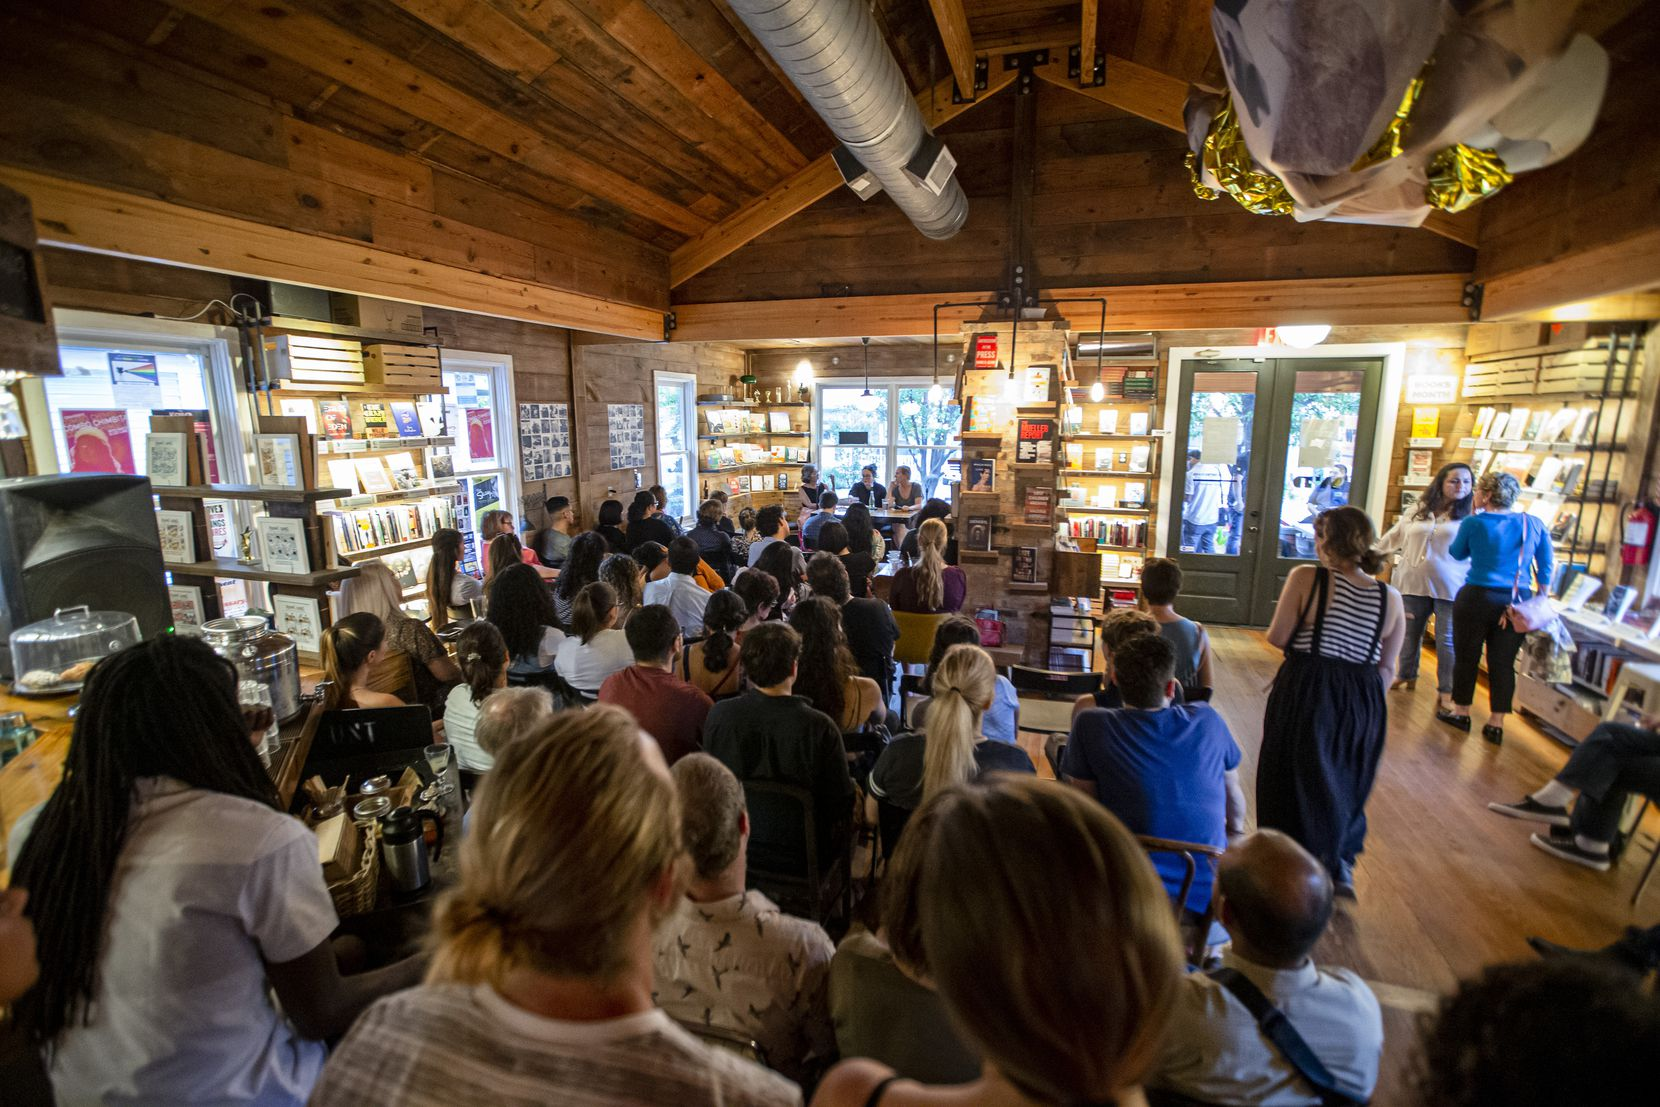 The Wild Detectives has become a gathering place for local book lovers.